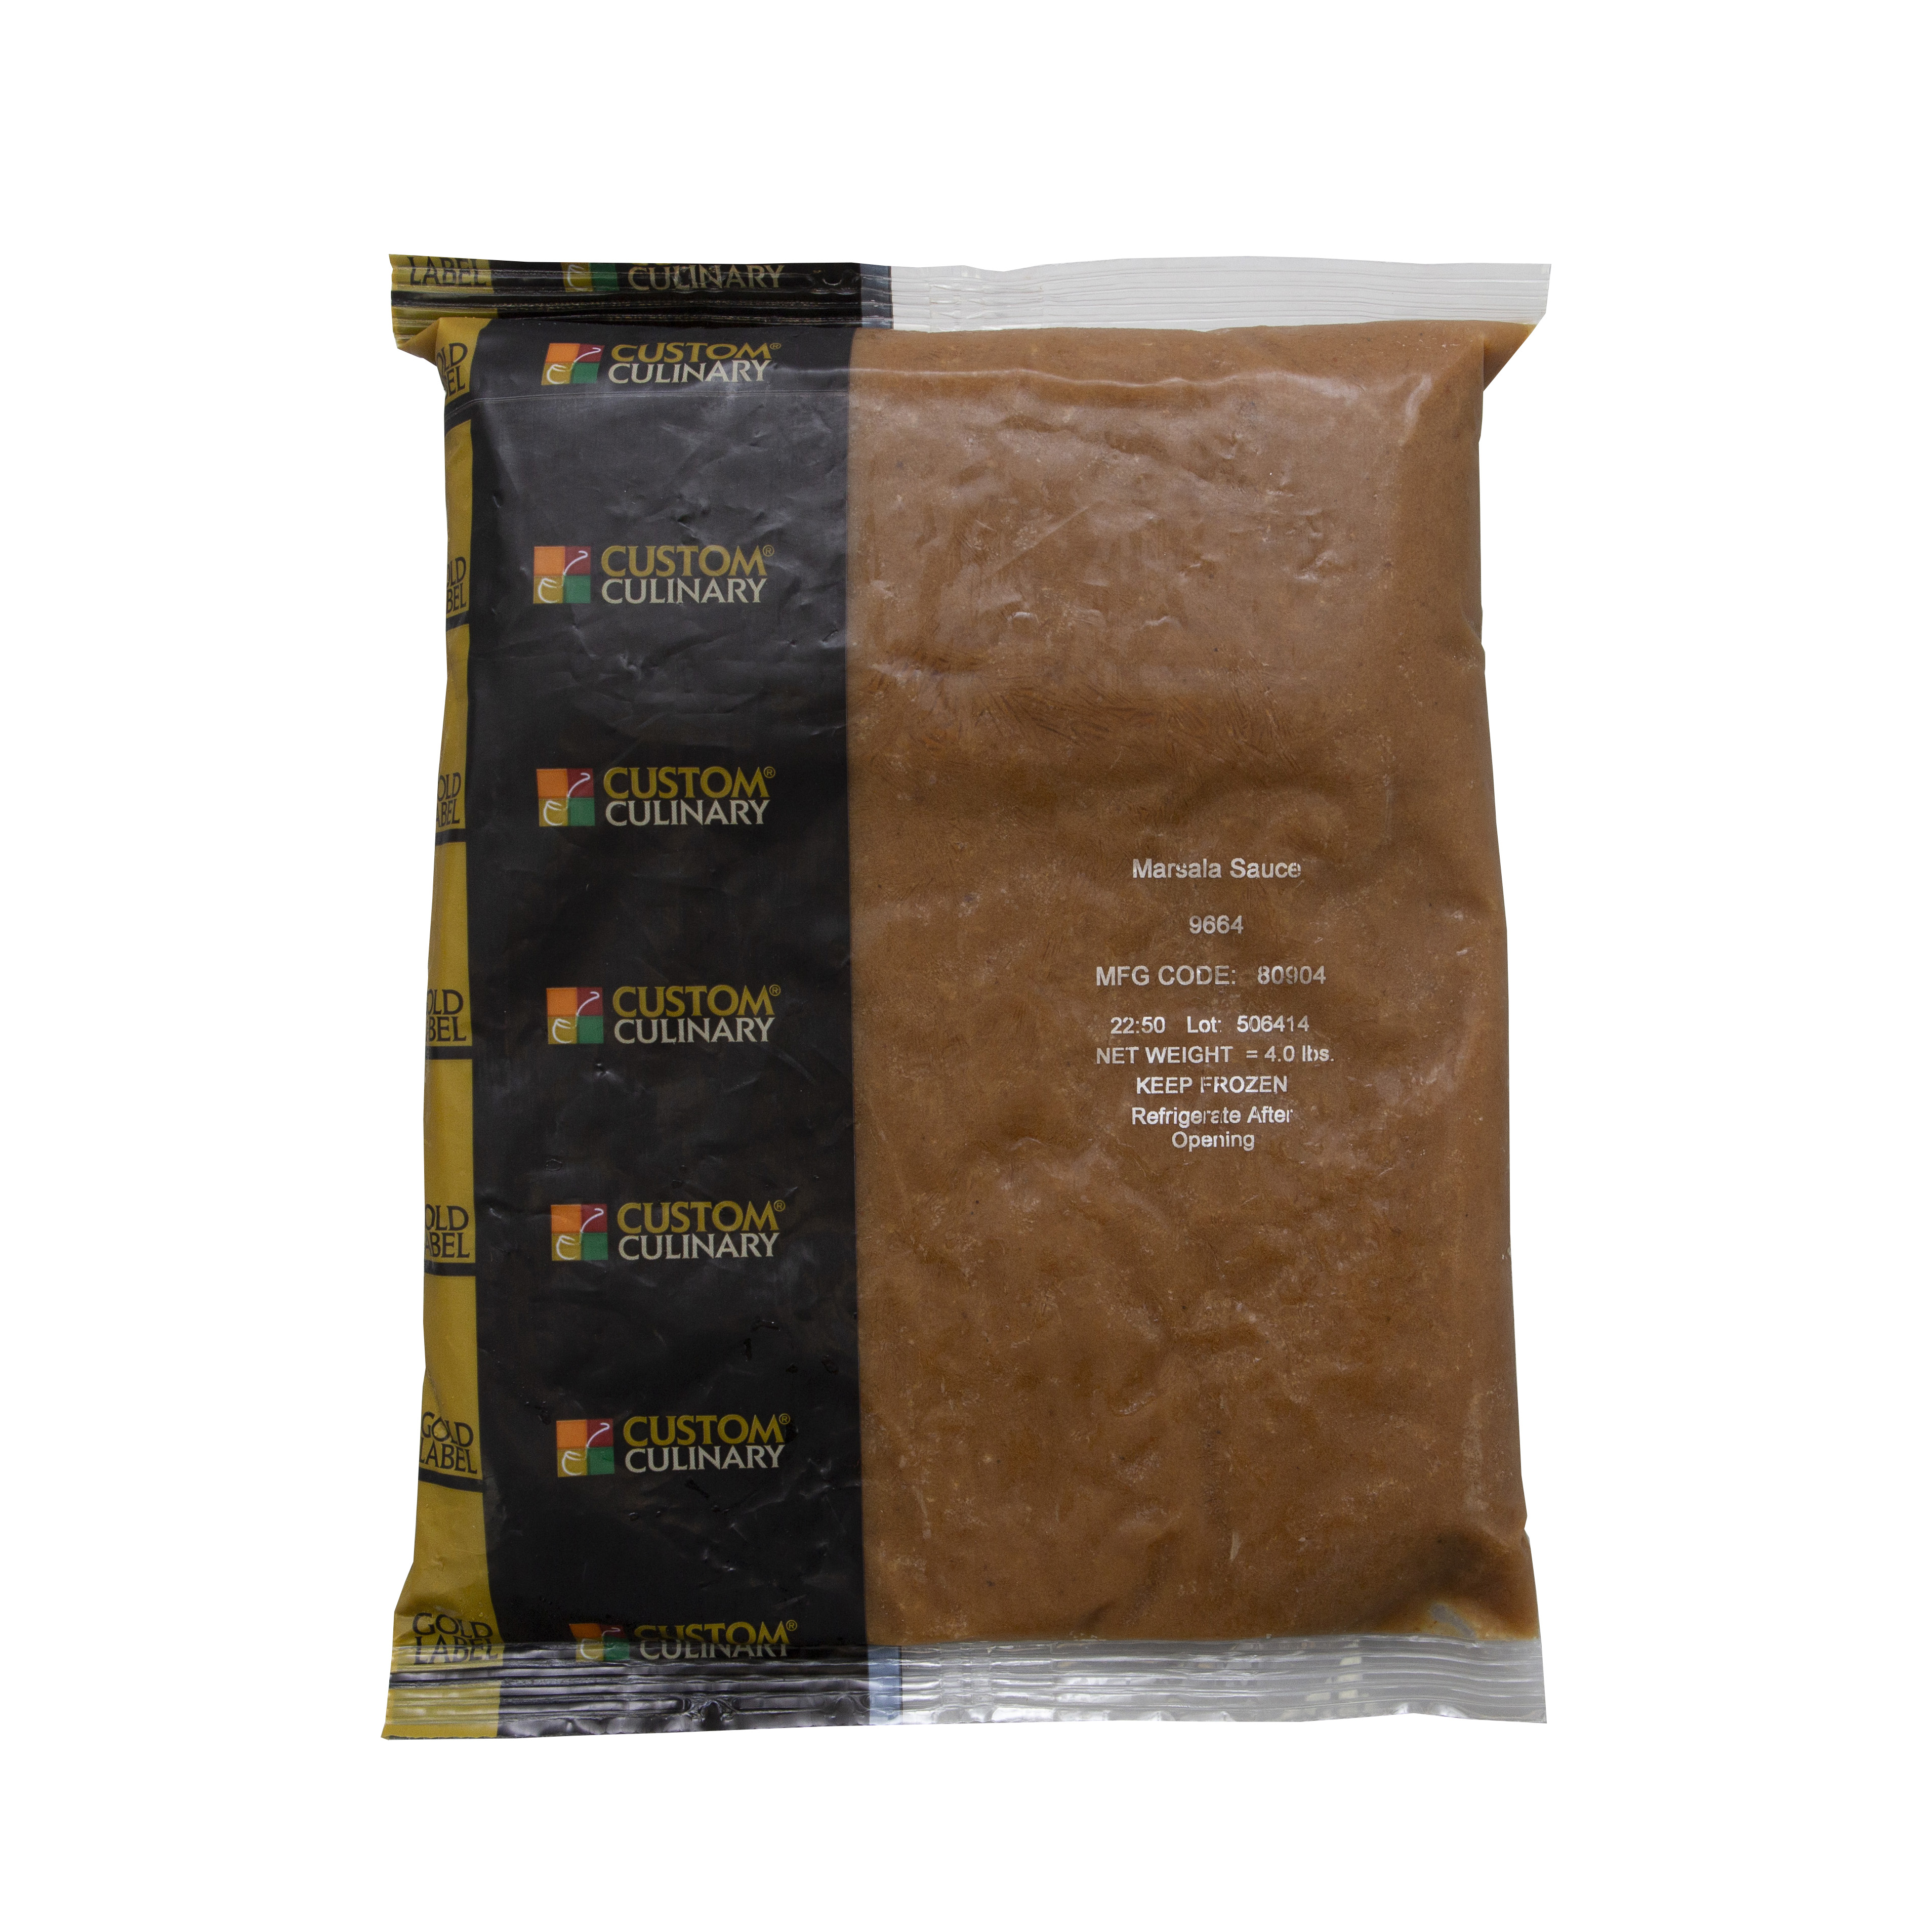 9664 - Gold Label Ready-To-Use Marsala Sauce